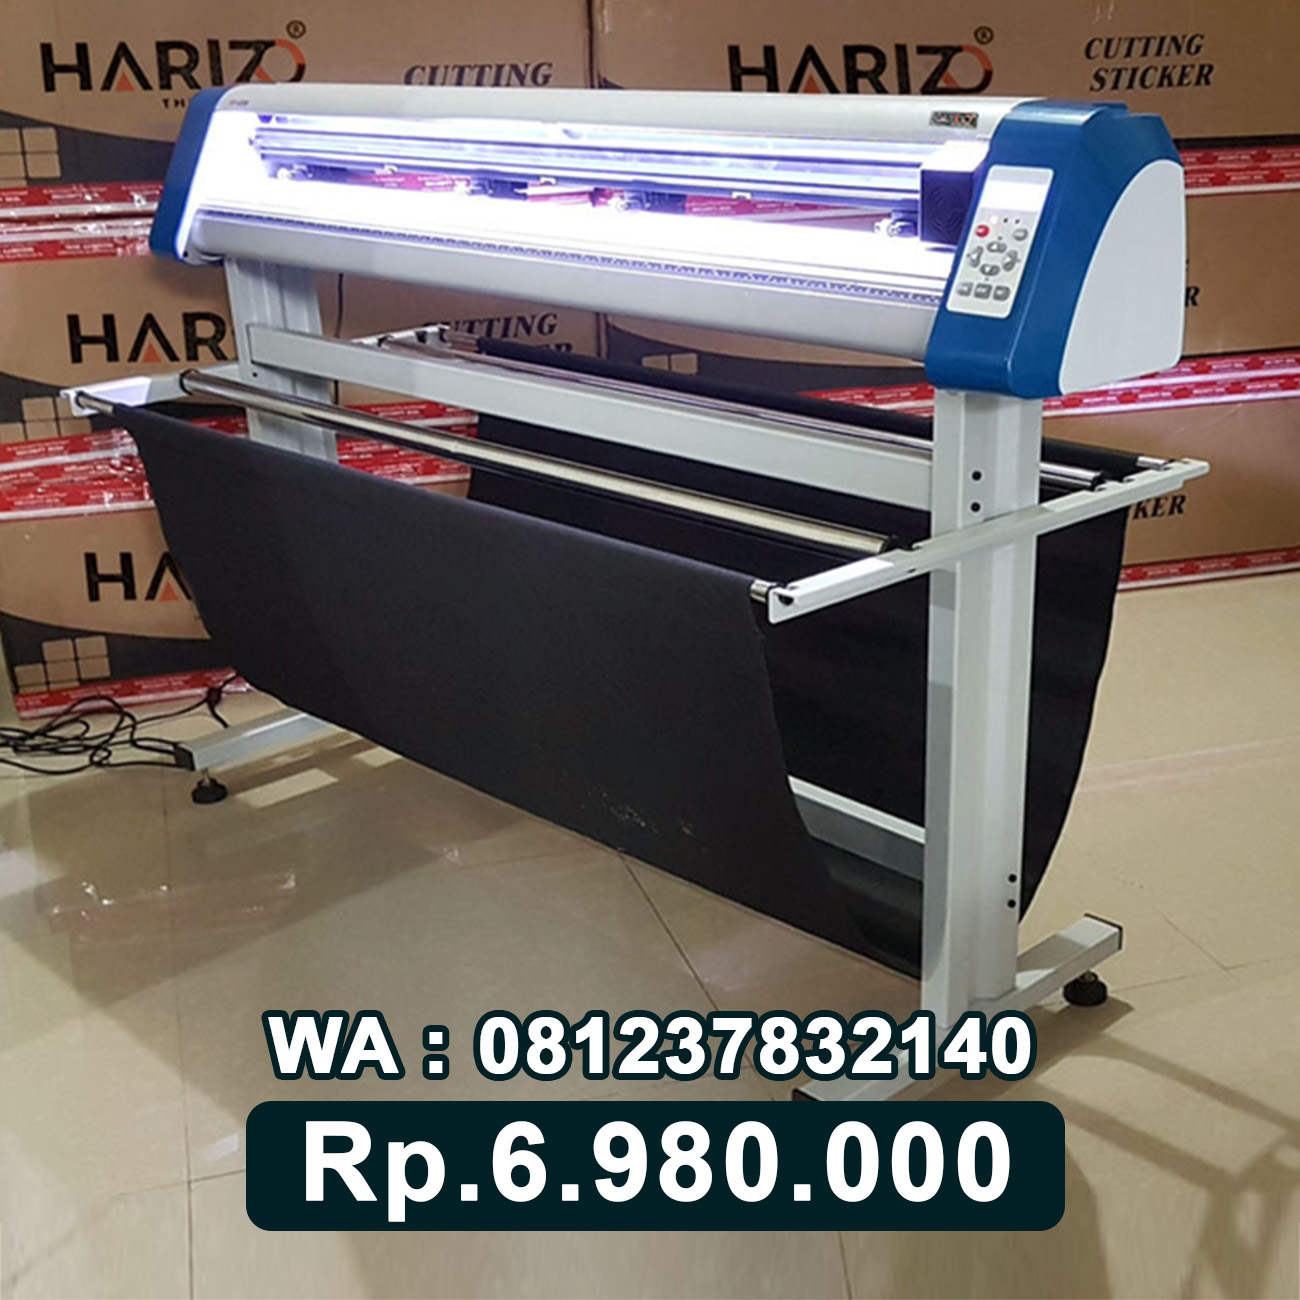 JUAL MESIN CUTTING STICKER HARIZO 1350 Pangkalan Bun